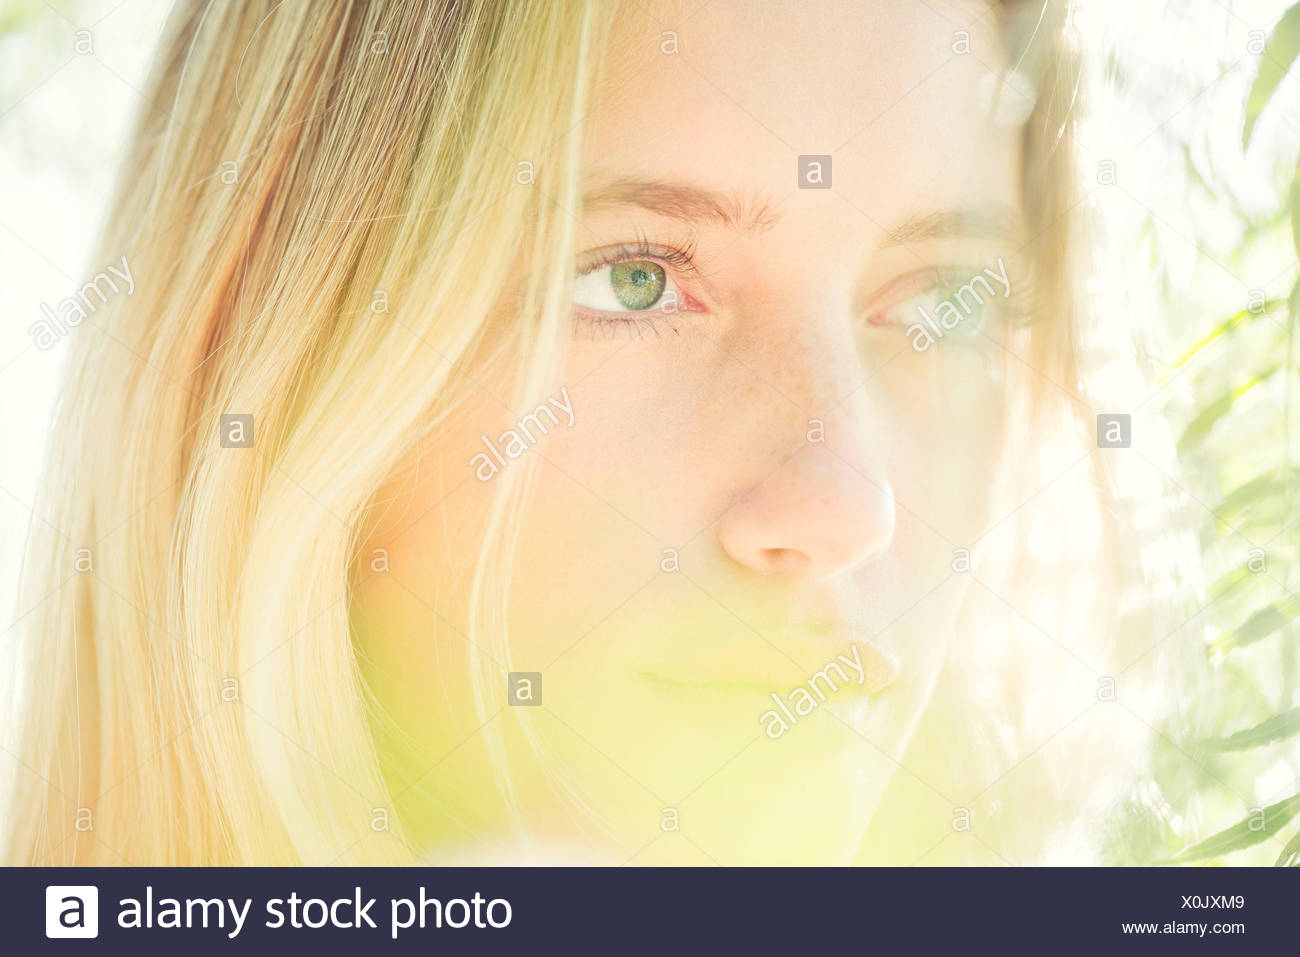 Woman daydreaming, portrait - Stock Image